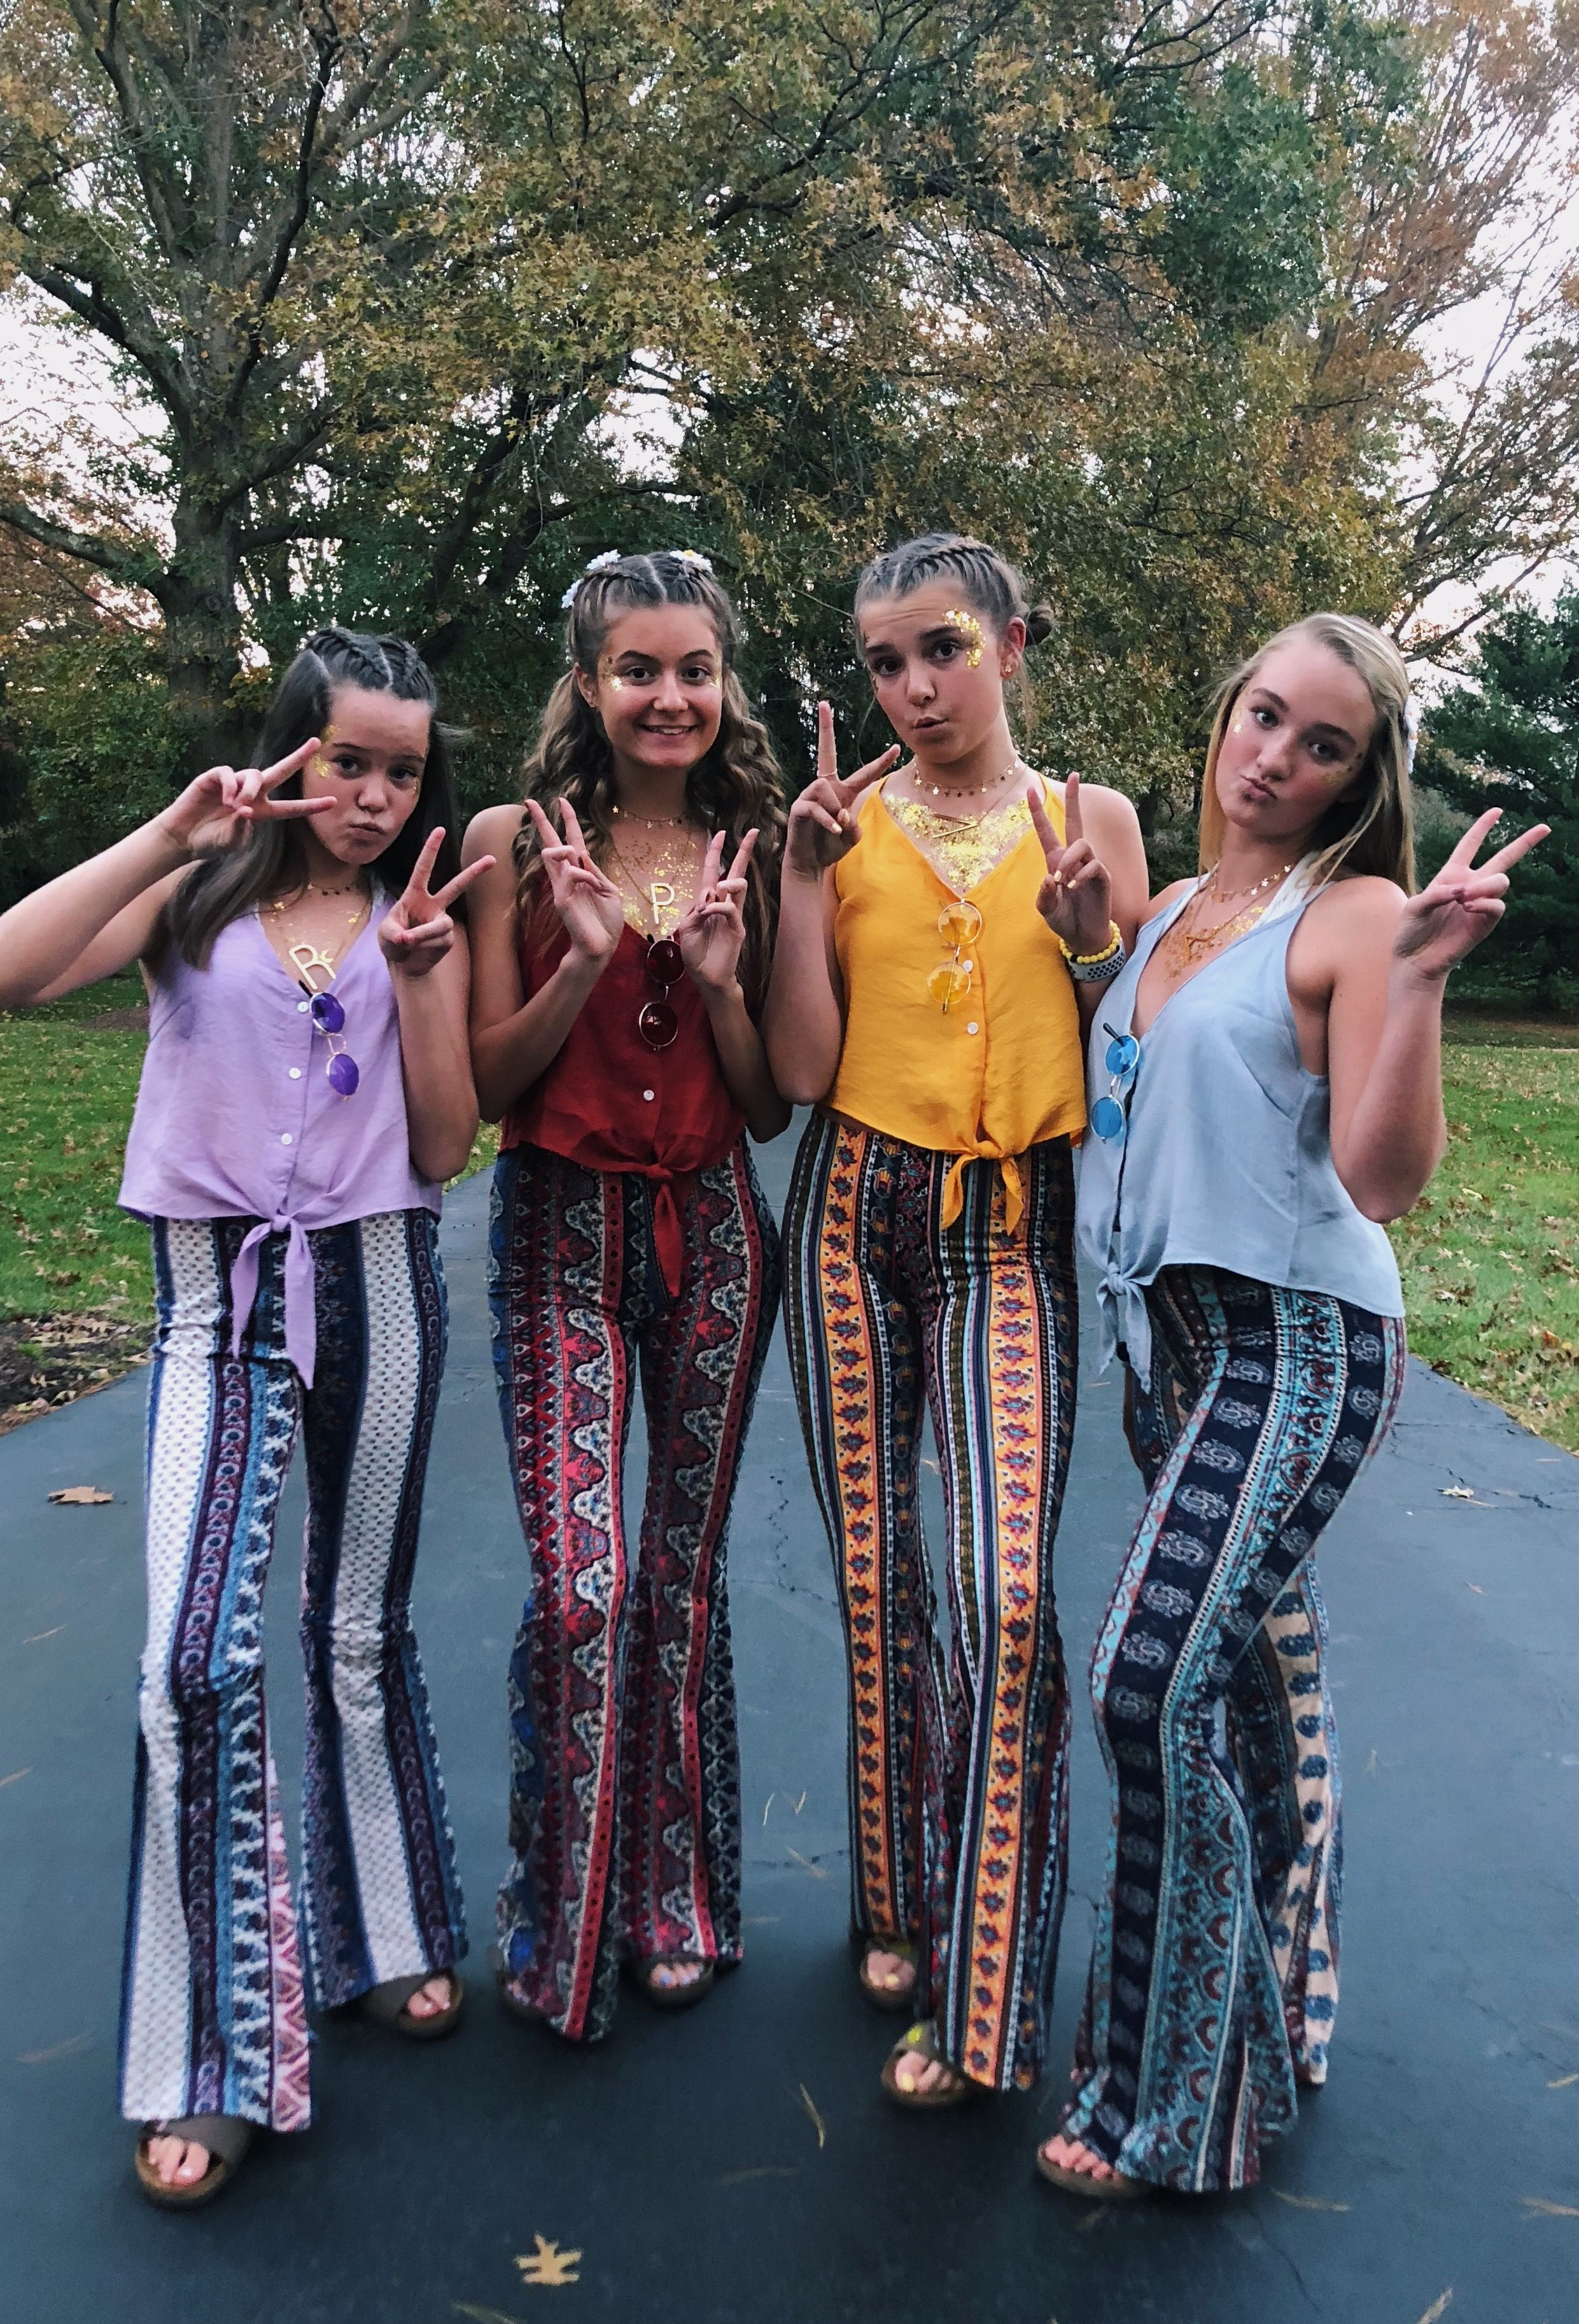 Hippie Halloween Costume Vsco.Pin By Andie Cappucci On My Pictures In 2019 Group Halloween